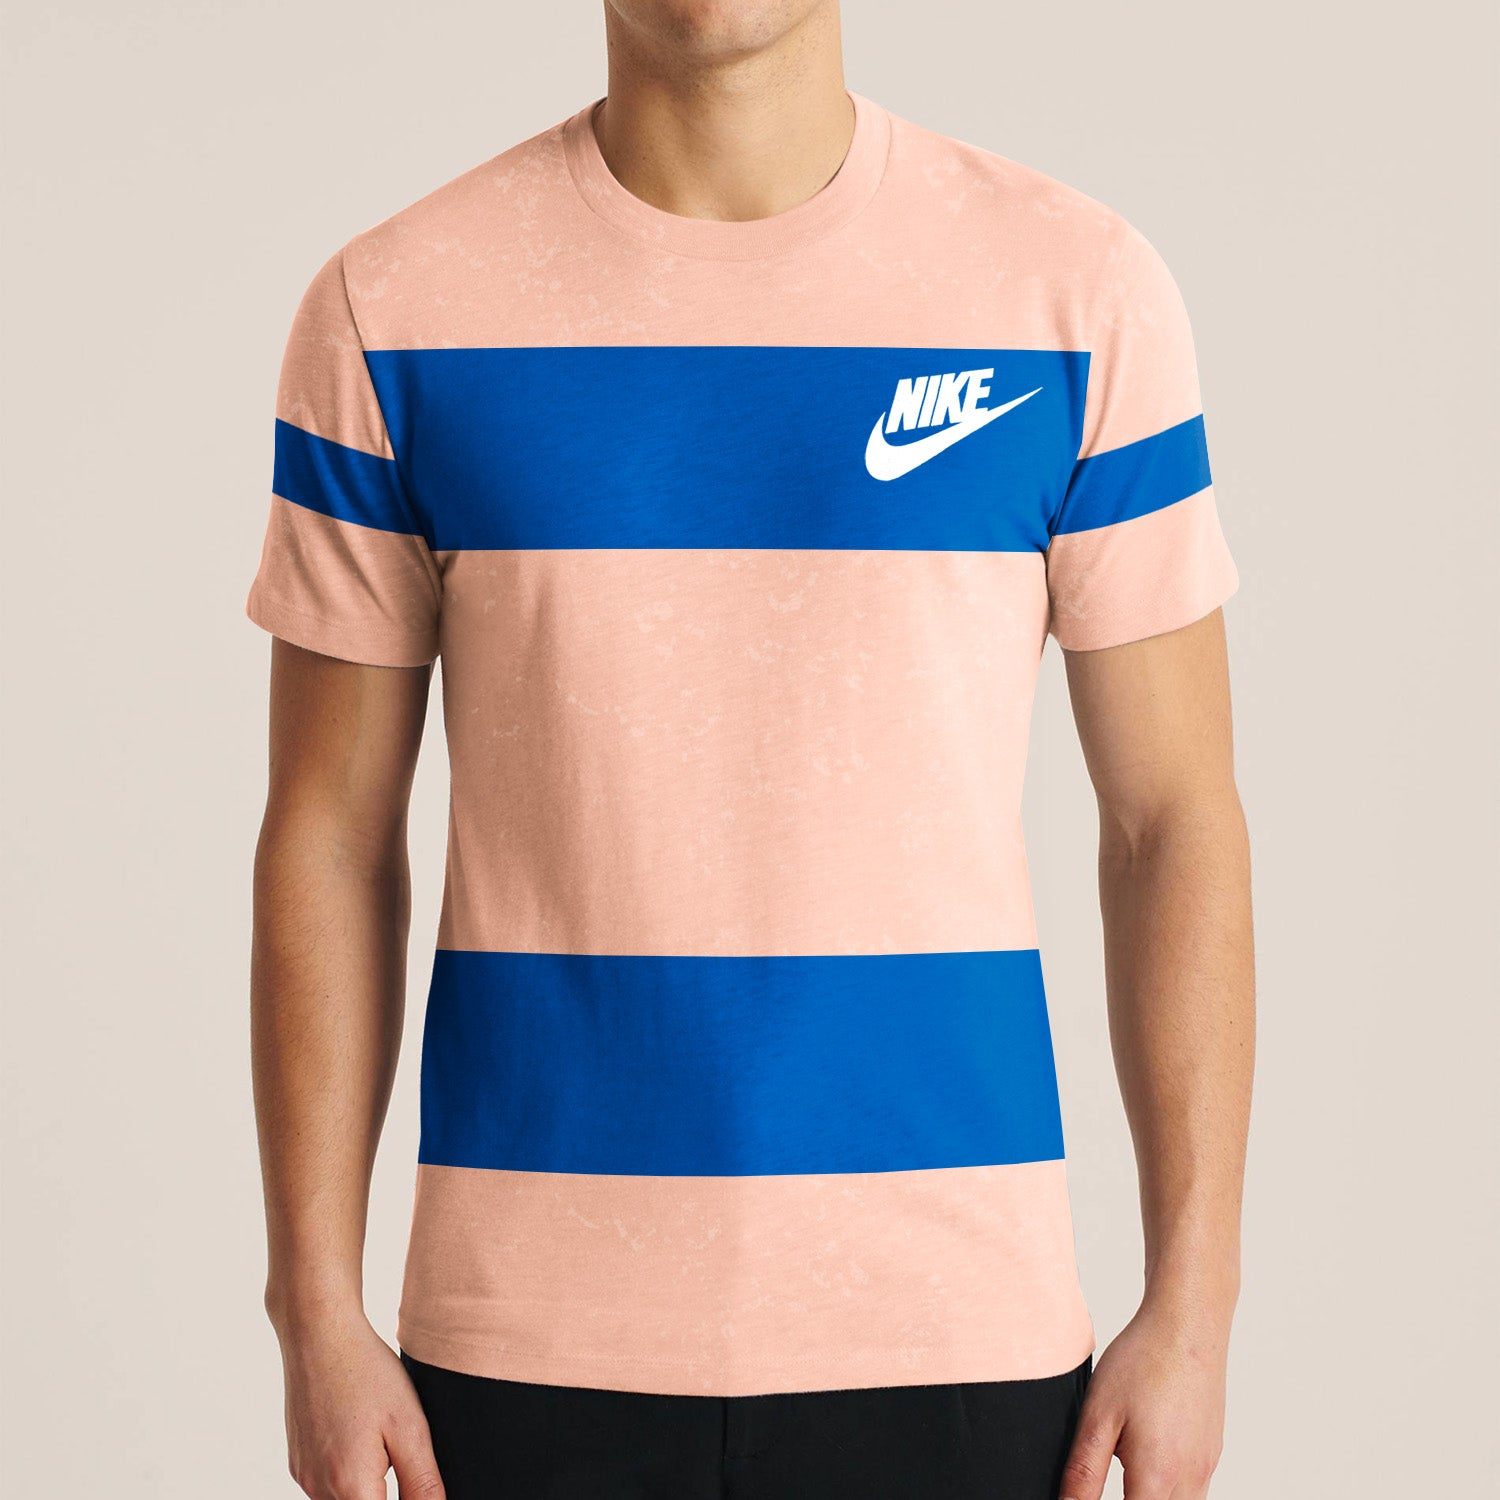 NK Summer Crew Neck Faded Tee Shirt For Men-Light Peach with Blue Print-BE12009